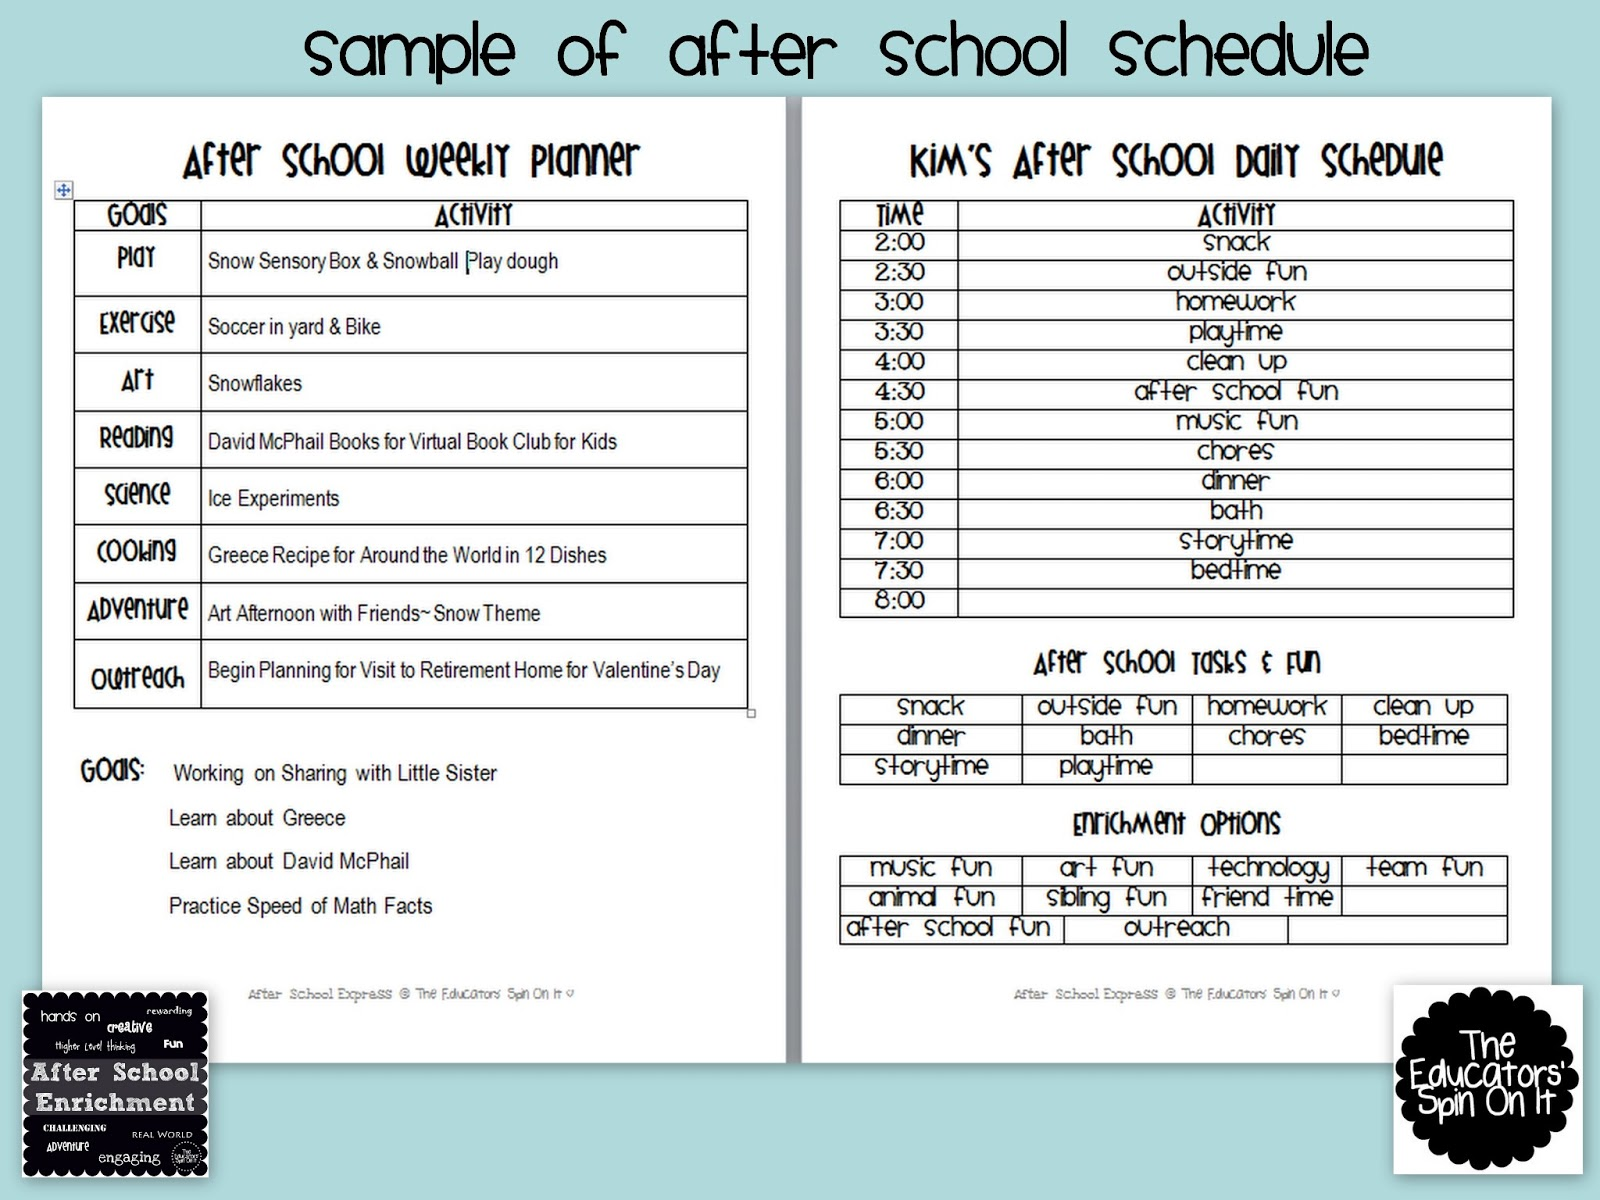 Sarasota County Library System Schedule Of Events After School Weekly Planner The Educators Spin On It